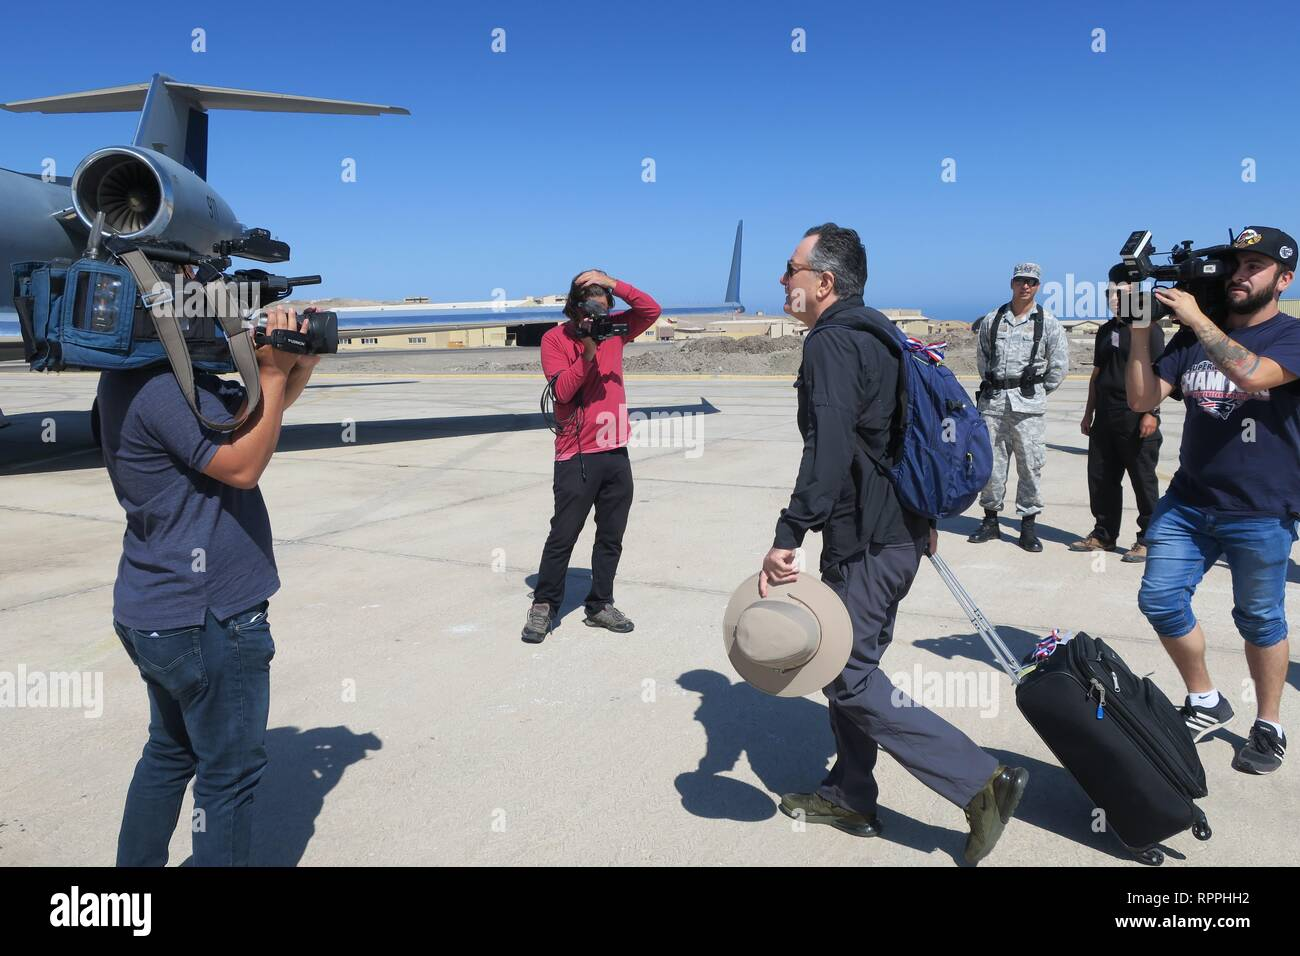 Chilean Foreign Minister Roberto Ampuero (R) gets on the G-IV plane of the Chilean Air Force to continue his trip to Cucuta (Colombia), in Iquique, Chile, 22 February 2019. Pinera was forced to change planes this Friday in the middle of his trip to the Colombian city of Cucuta due to a failure in the presidential aircraft. The Chilean leader departed from Santiago to border the Boeing 737 of the Air Force, the smallest of the two that he usually uses on his trips, to the city of Iquique, where the aircraft would load fuel to continue his route to Cucuta, where he will attend the concert Venezu - Stock Image